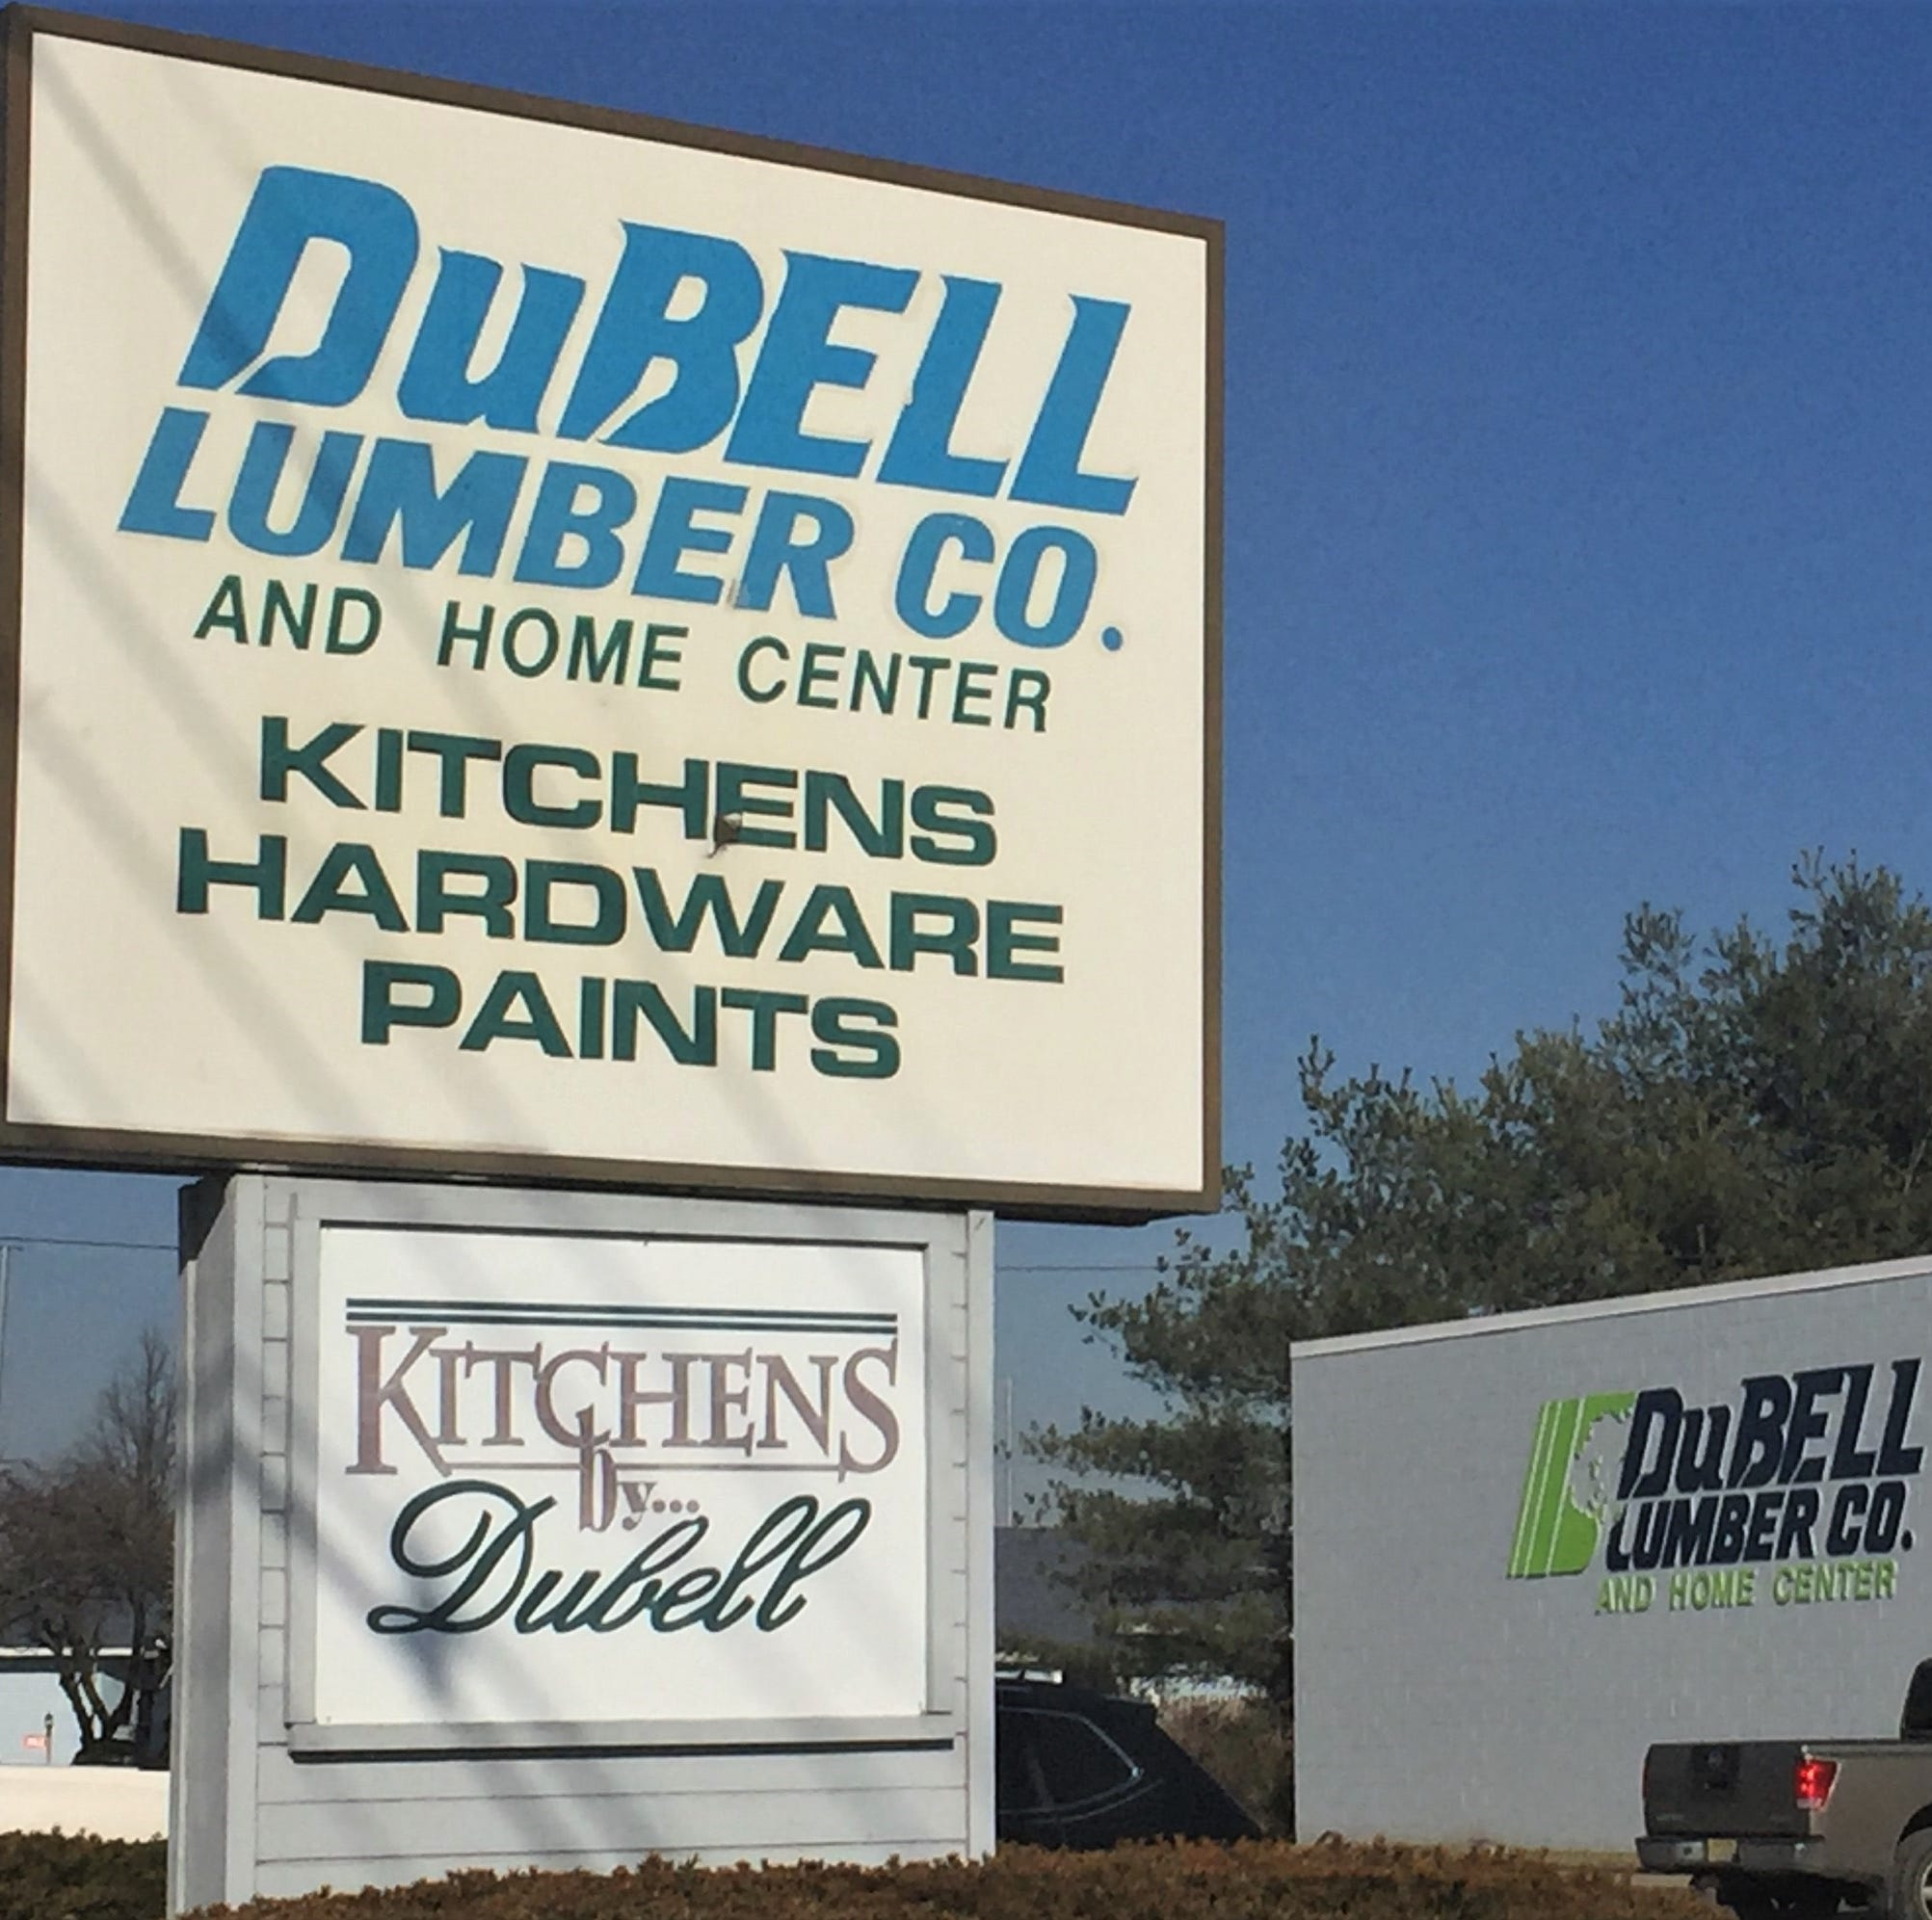 Lawsuit claims DuBell Lumber 'improperly terminated' workers